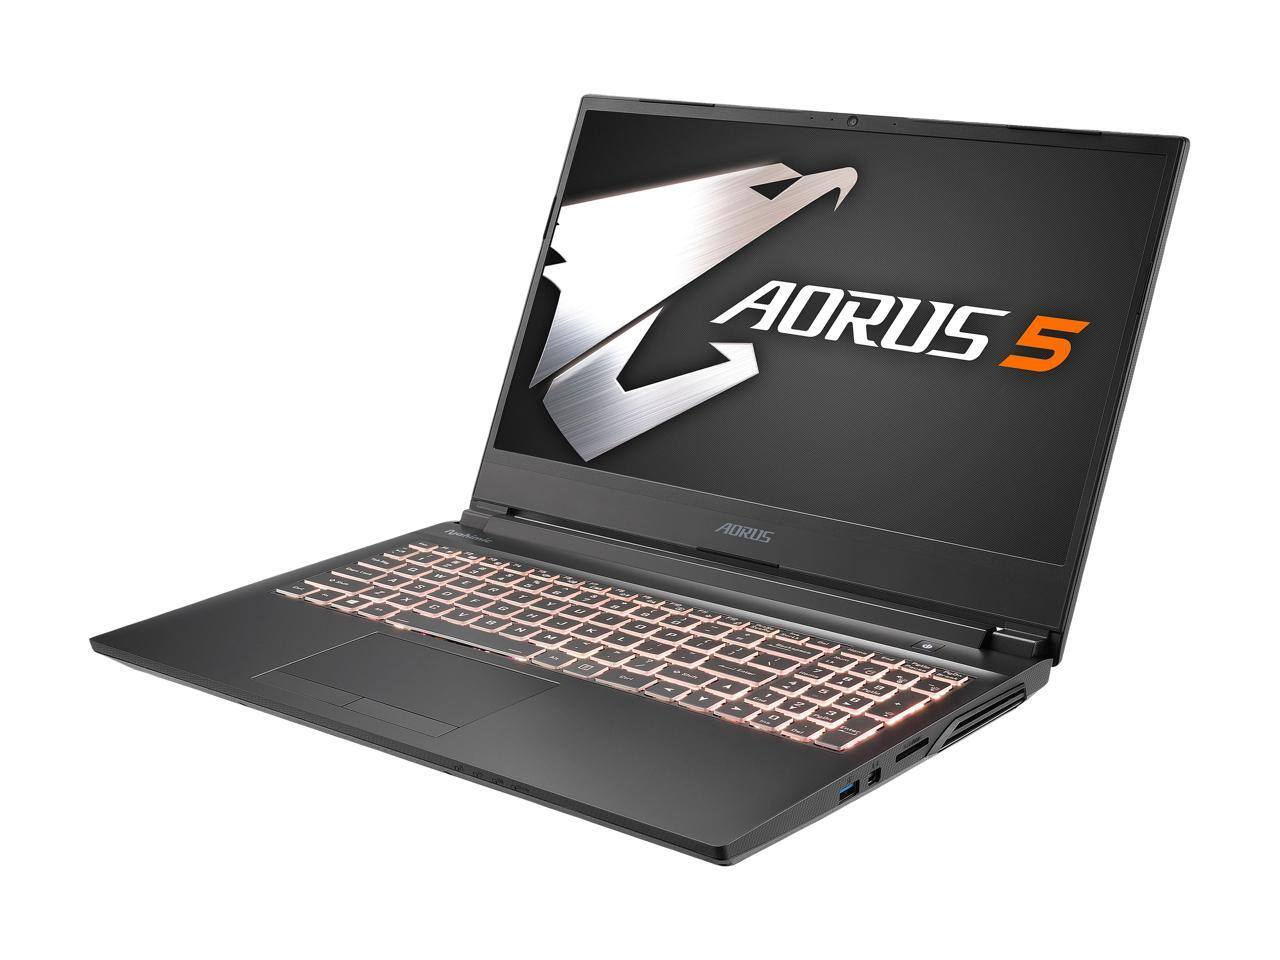 "Gigabyte Aorus 5 - 15.6"" 144Hz - Intel Core i7-10750H - GeForce RTX 2060 - 16GB DDR4 - 512GB SSD - Windows 10 Home - Gaming Laptop (Aorus 5 KB-7US1130SH) for $1049.00 AR"